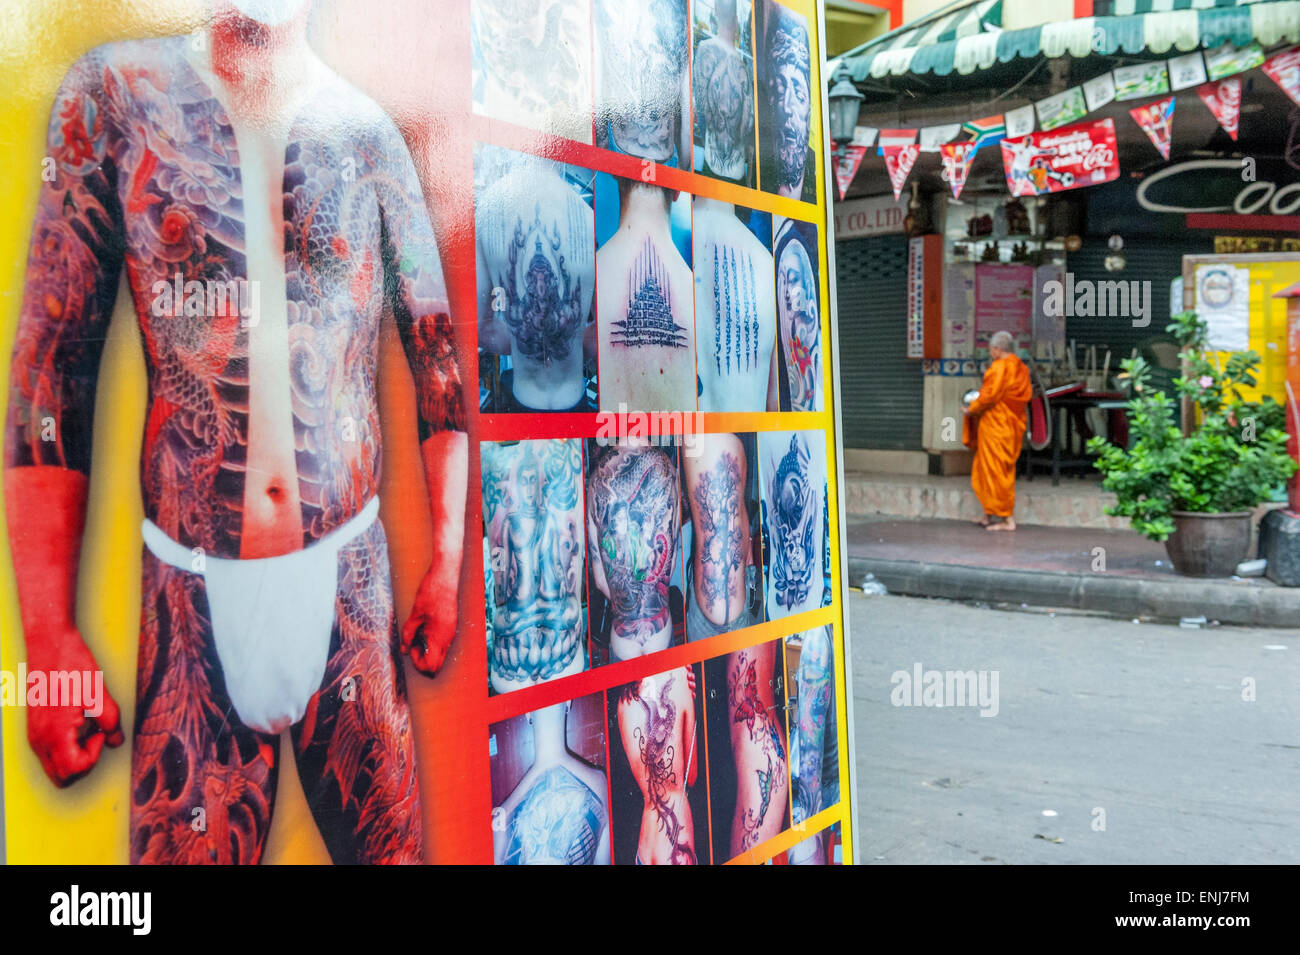 Buddhist monk on his morning alms round passing a large display for a tattoo studio. Bangkok. Thailand - Stock Image